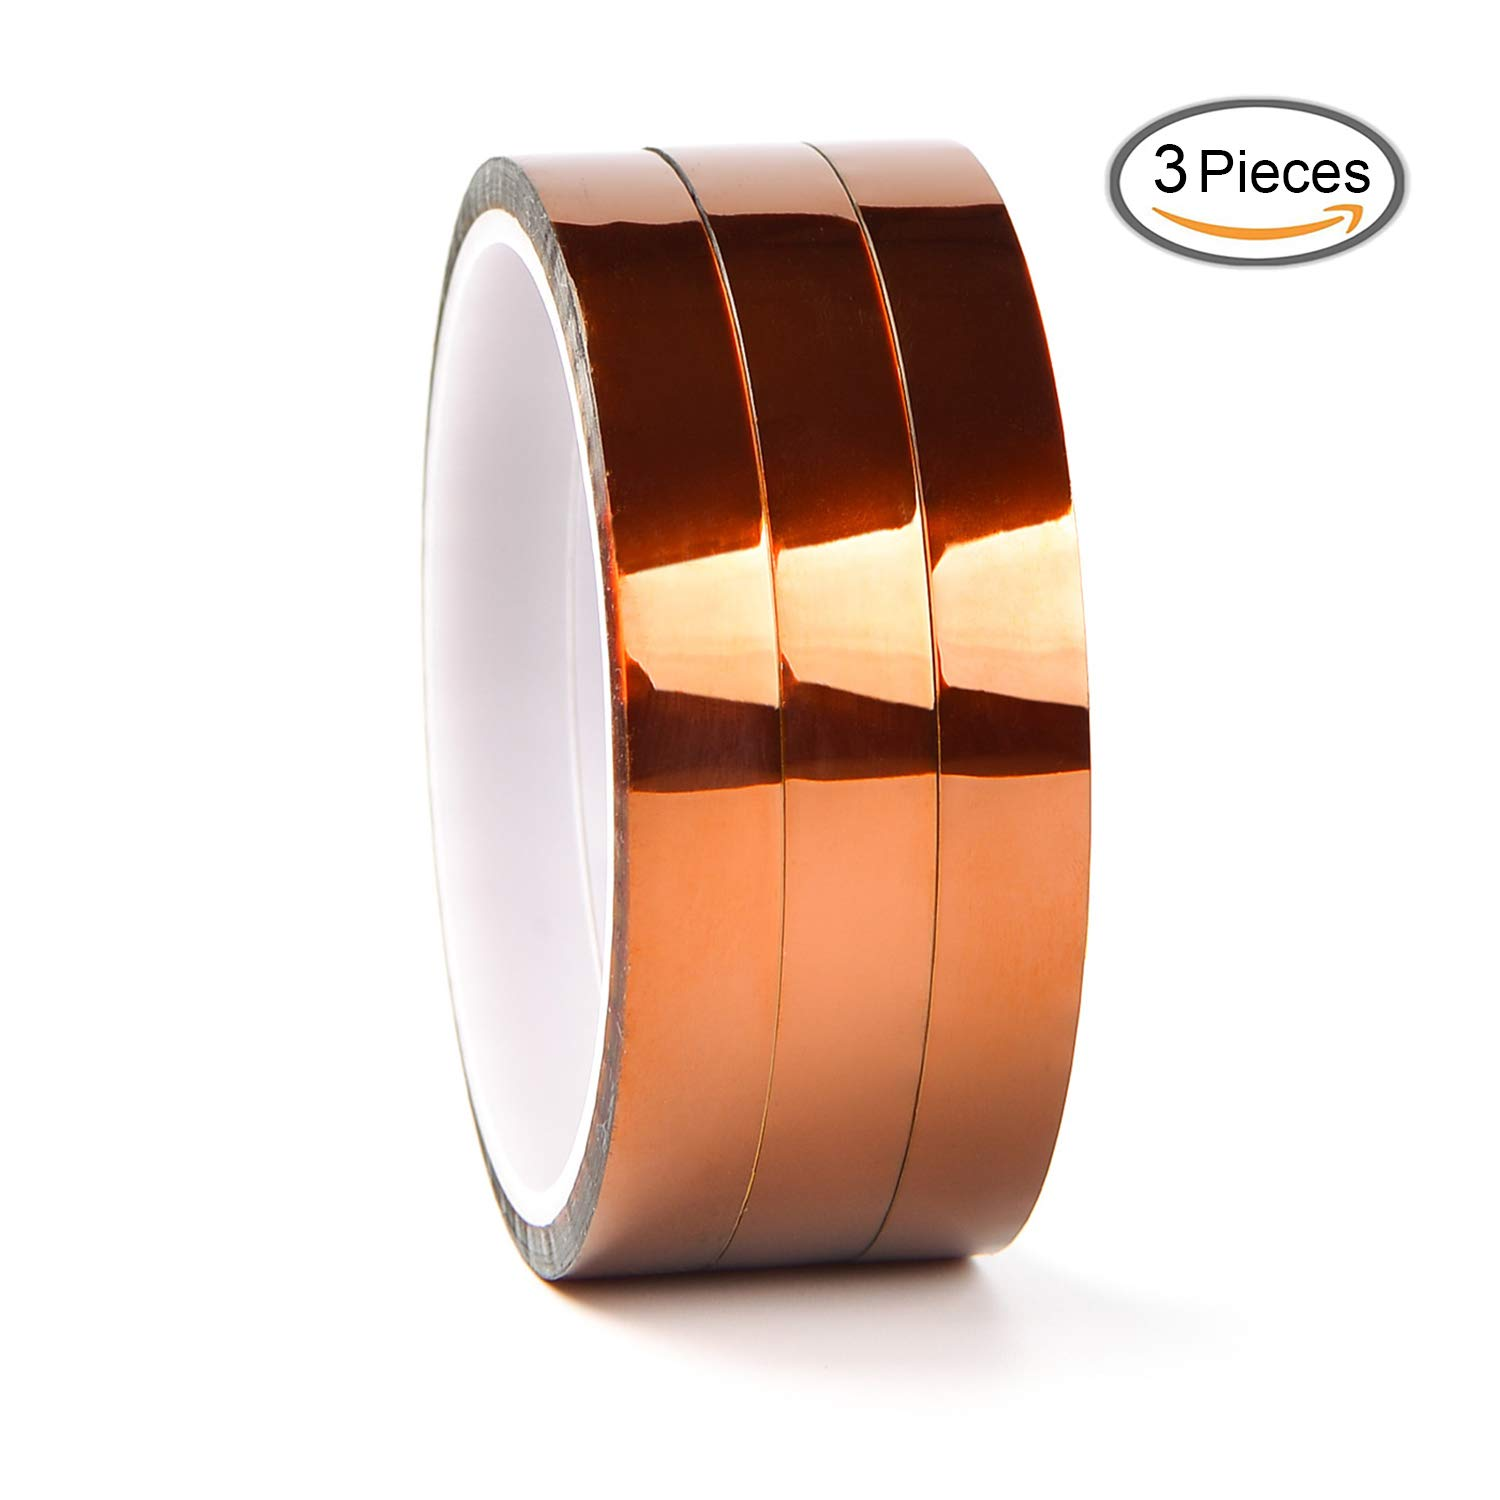 LABOTA 3 Roll 12mm High Temp Tape, Heat Resistant Tape Polyimide Masking Tape Kapton Tape for Masking, Soldering, Powder Coating, Sublimation and Insulating Circuit Boards (12MM x 30M)